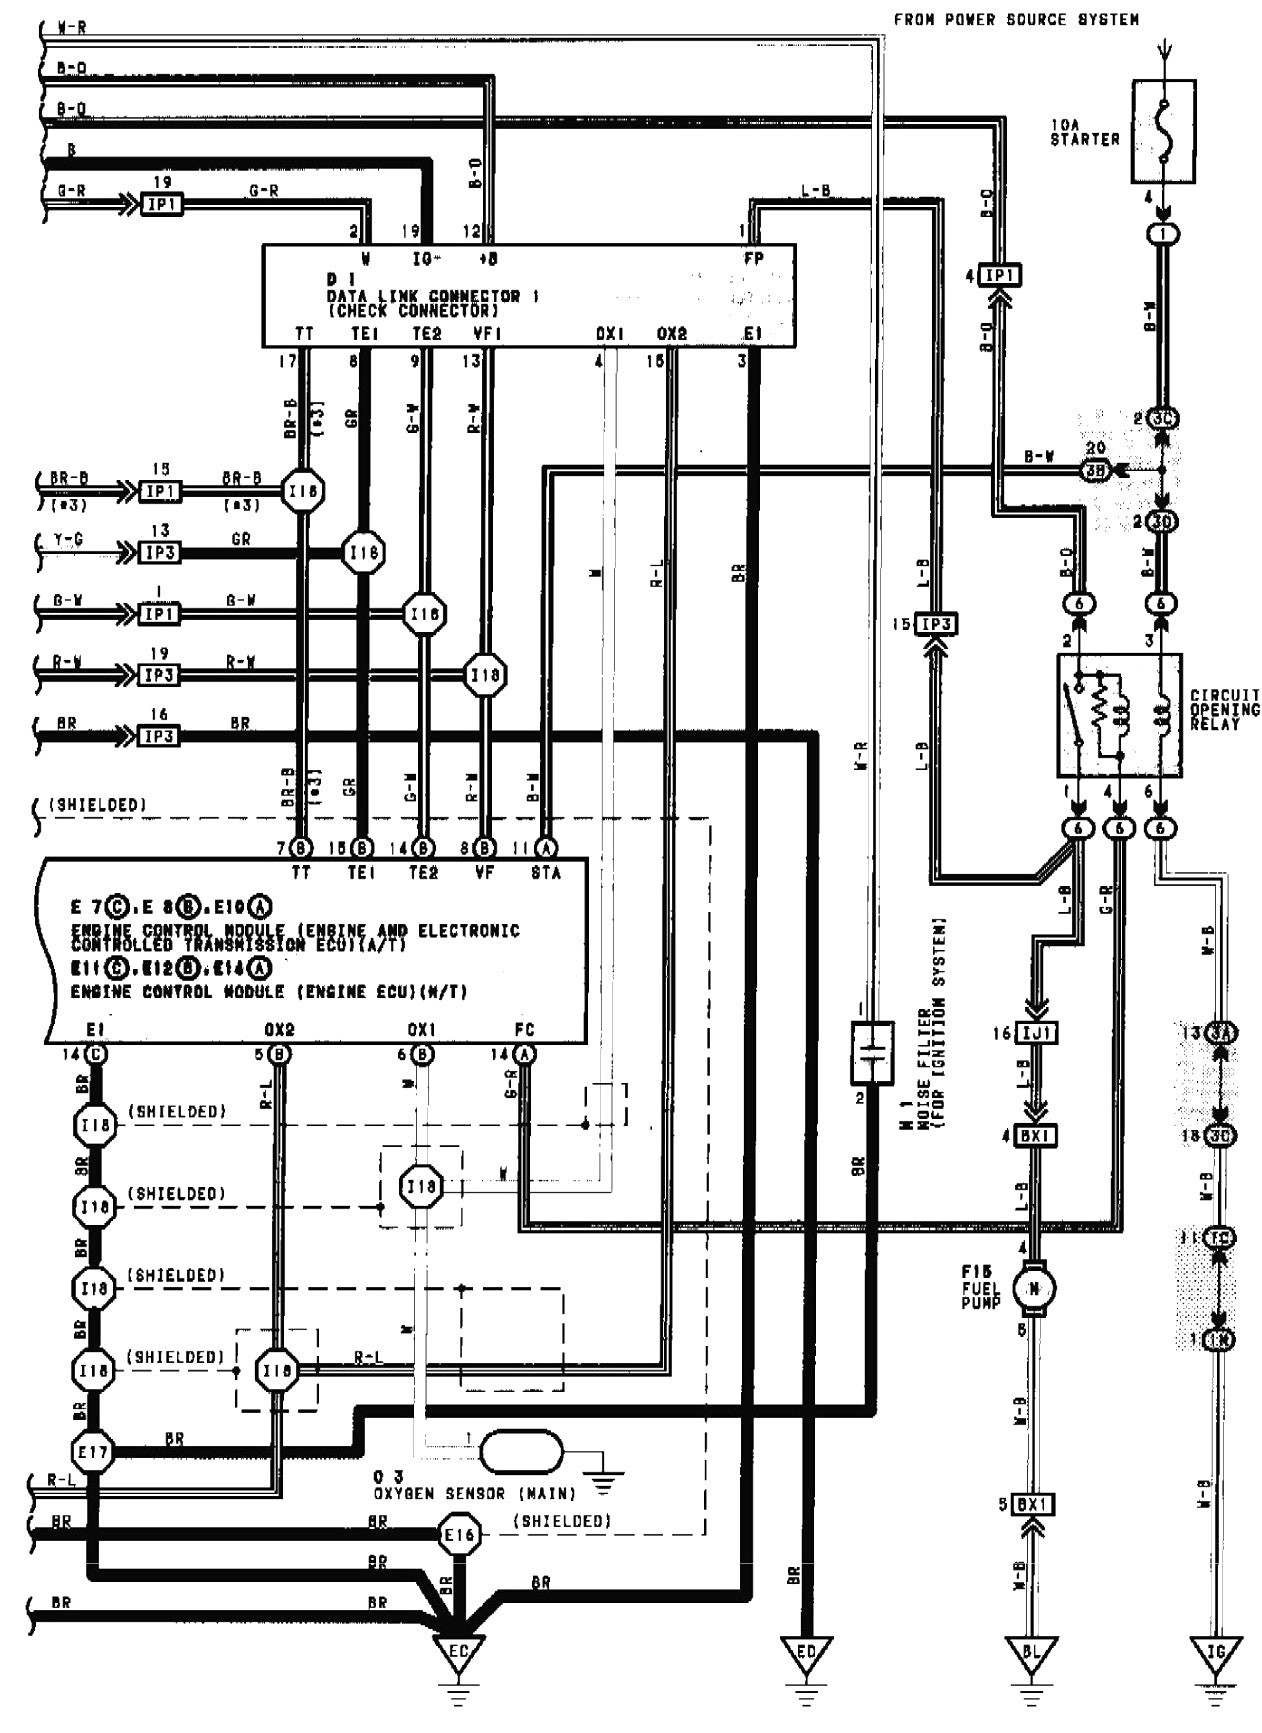 Toyota 2 4l Engine Diagram. Toyota. Auto Wiring Diagram